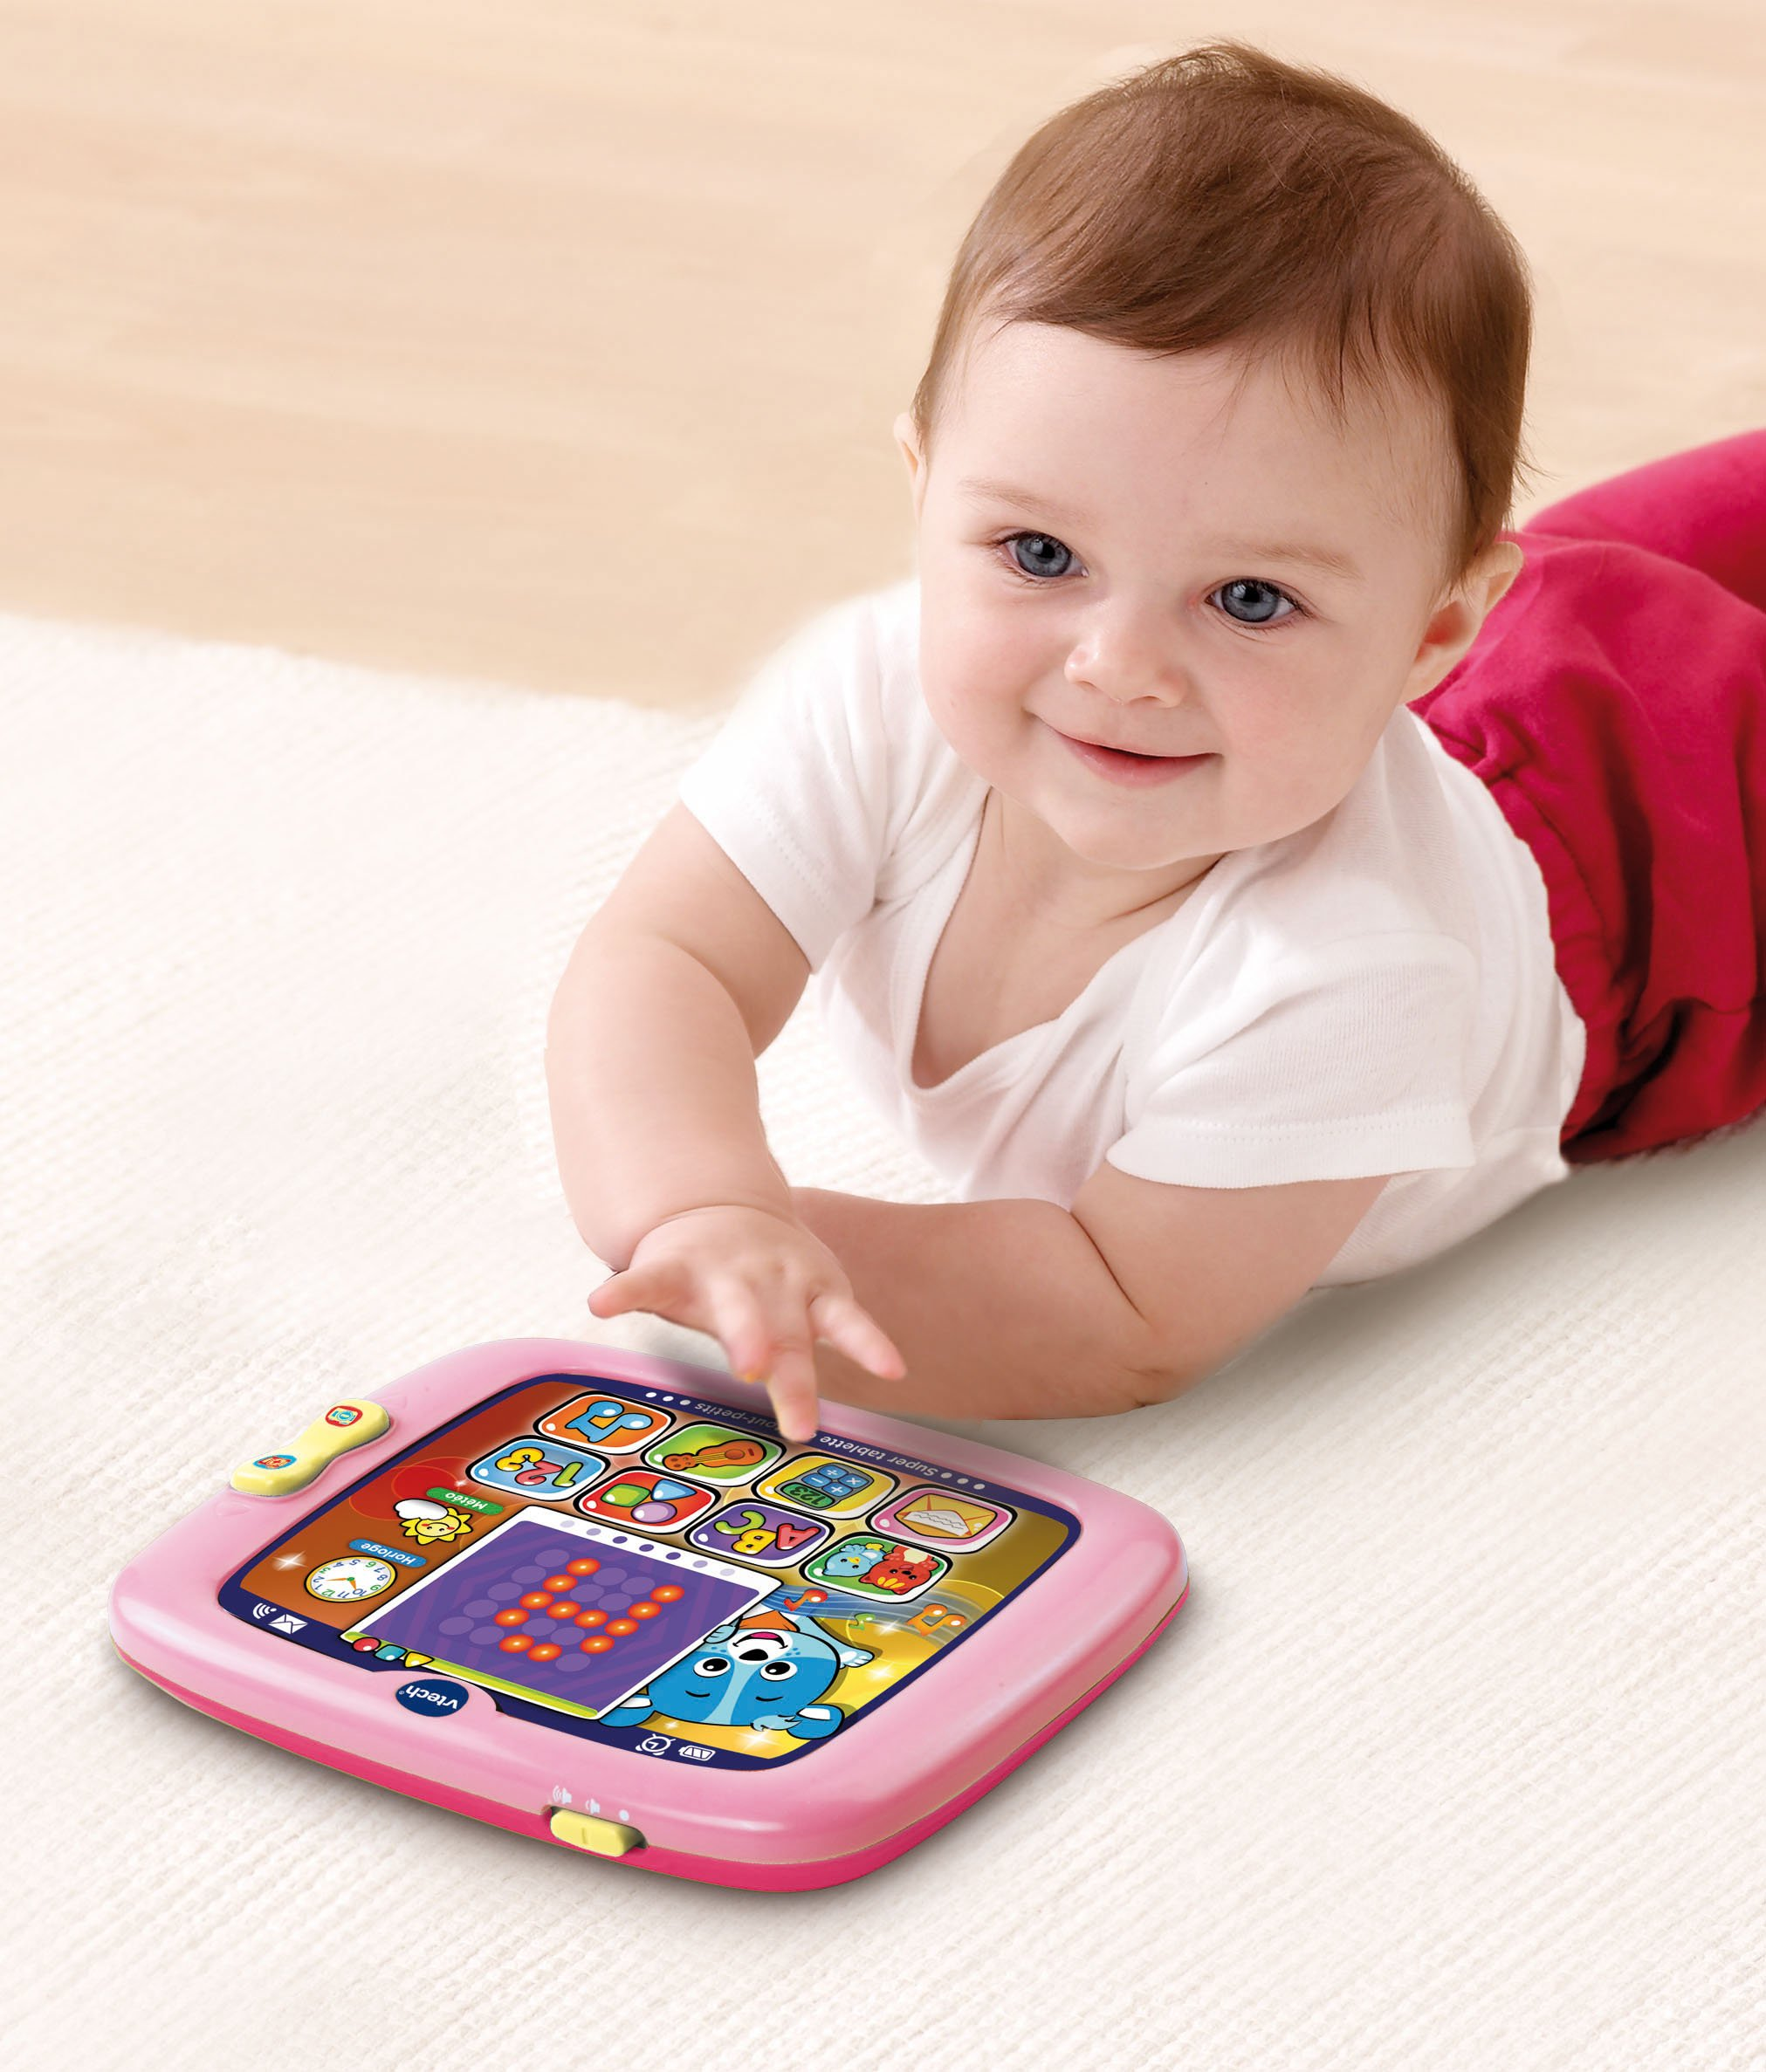 VTech Light-Up Baby Touch Tablet, Pink by VTech (Image #3)